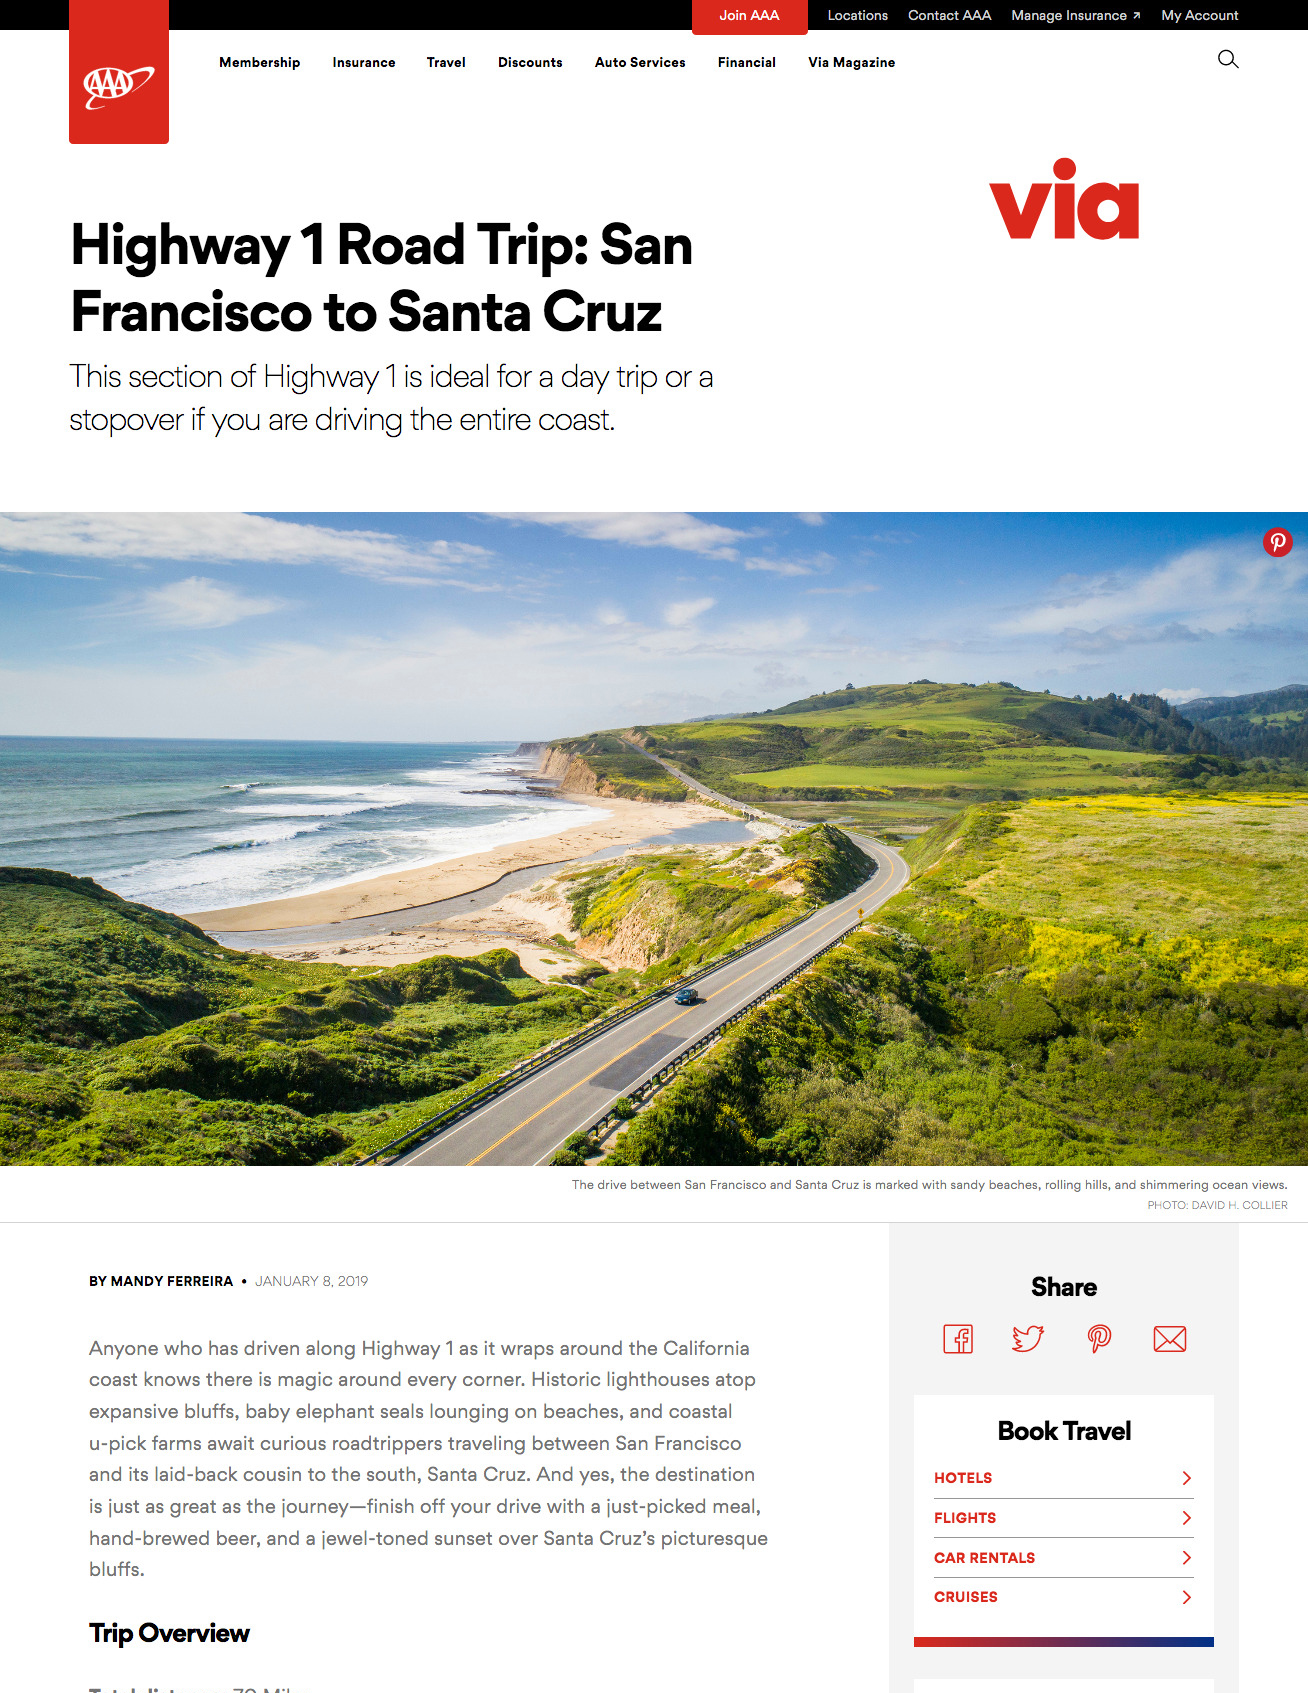 Highway 1 Road Trip: San Francisco to Santa Cruz, Mandy Ferreira for Via